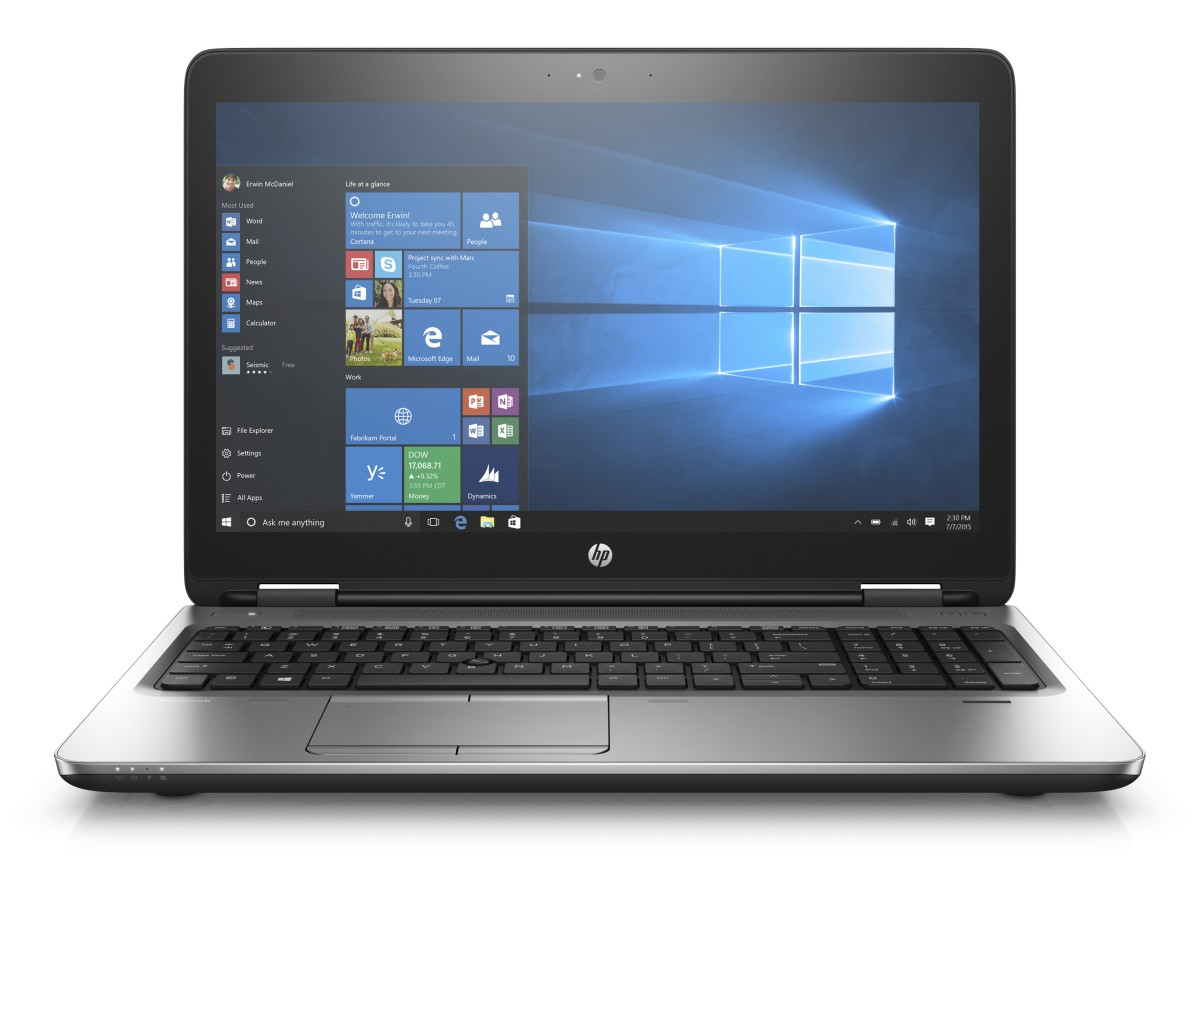 HP ProBook 650 G3 i7-7820HQ / 8GB / 512GB SSD TurboG2 / 15,6'' FHD / Win 10 Pro